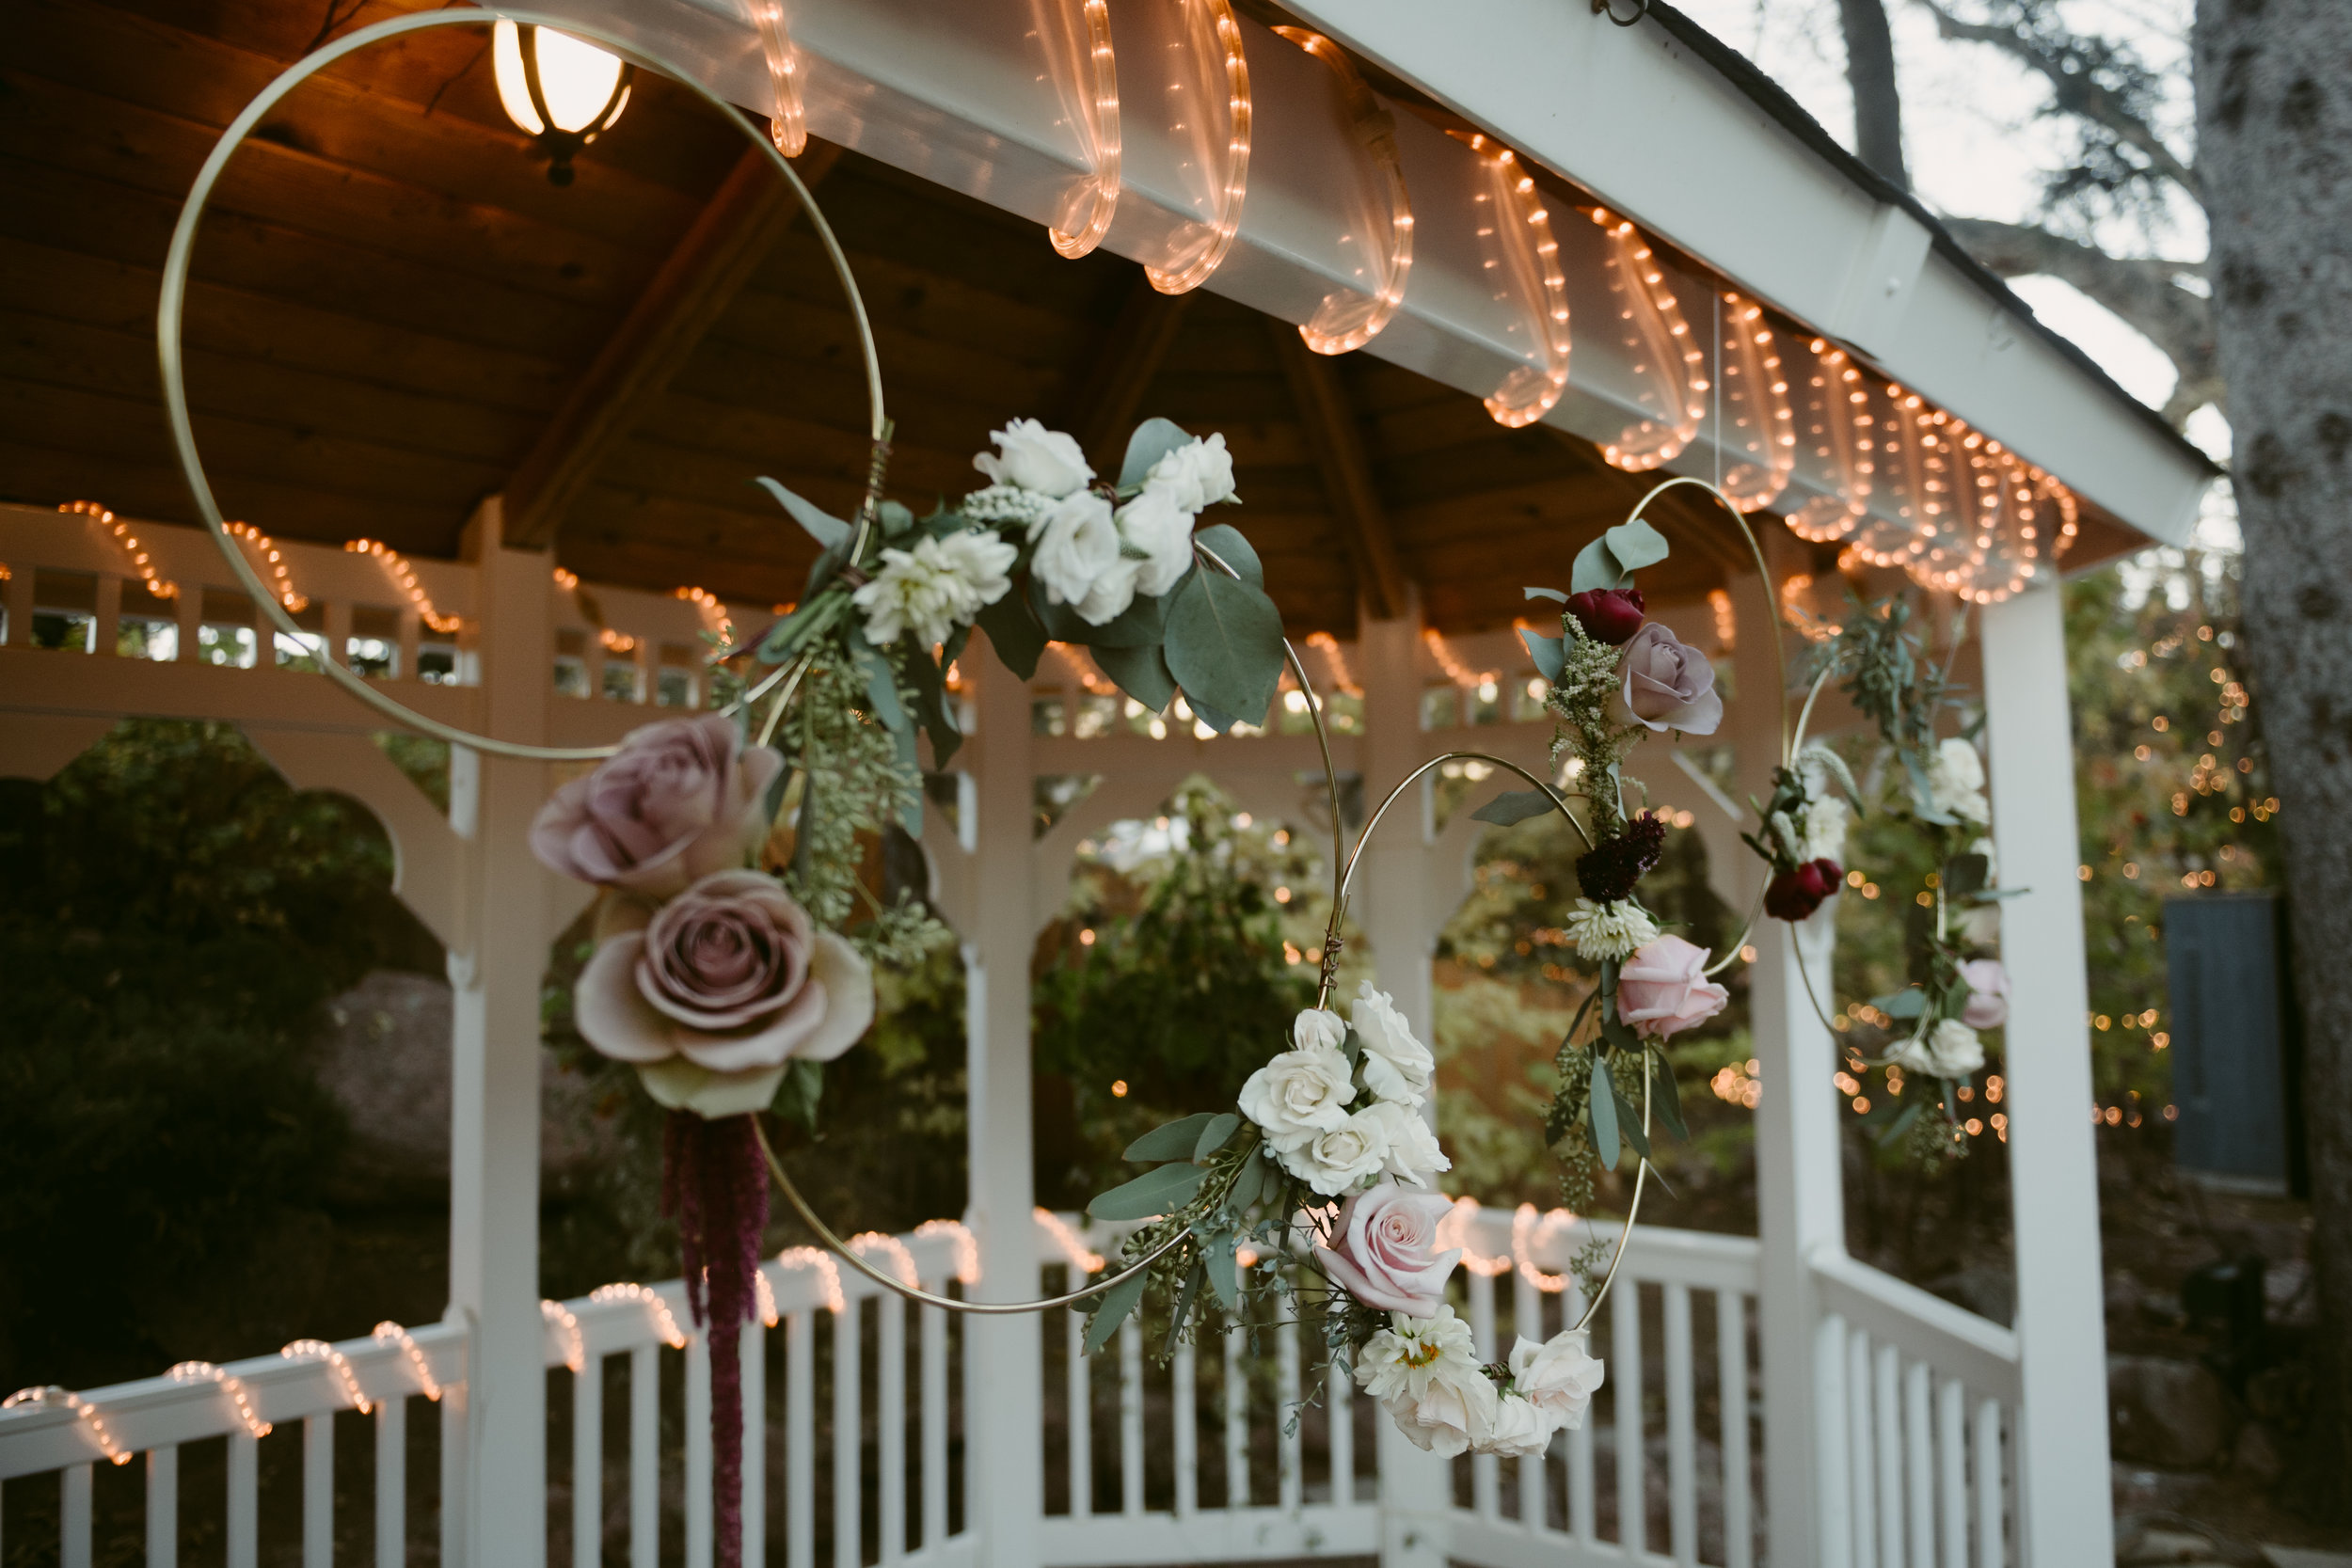 Flowers by Lace and Lilies, ceremony flowers, tapestry house wedding, circle flowers, hoop flowers, foliage, greenery, lavender flowers, roses, arch flowers, colorful bloom, pink wedding flowers, cross flowers, garland, pergola flowers,  ceremony decor